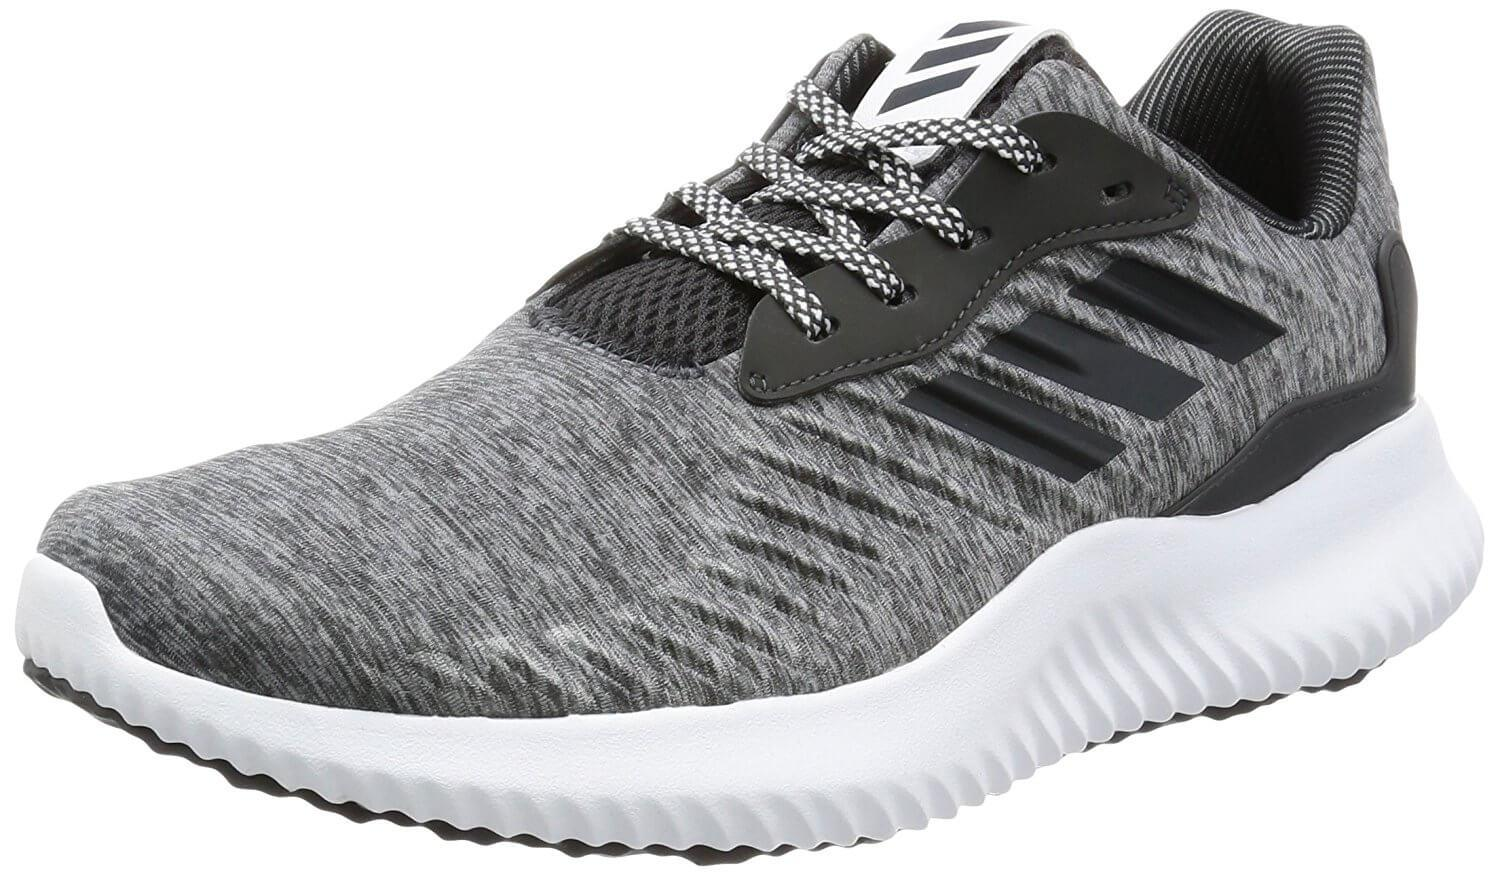 factory price 8d51a f52c0 Adidas Alphabounce RC Review - Buy or Not in Apr 2019